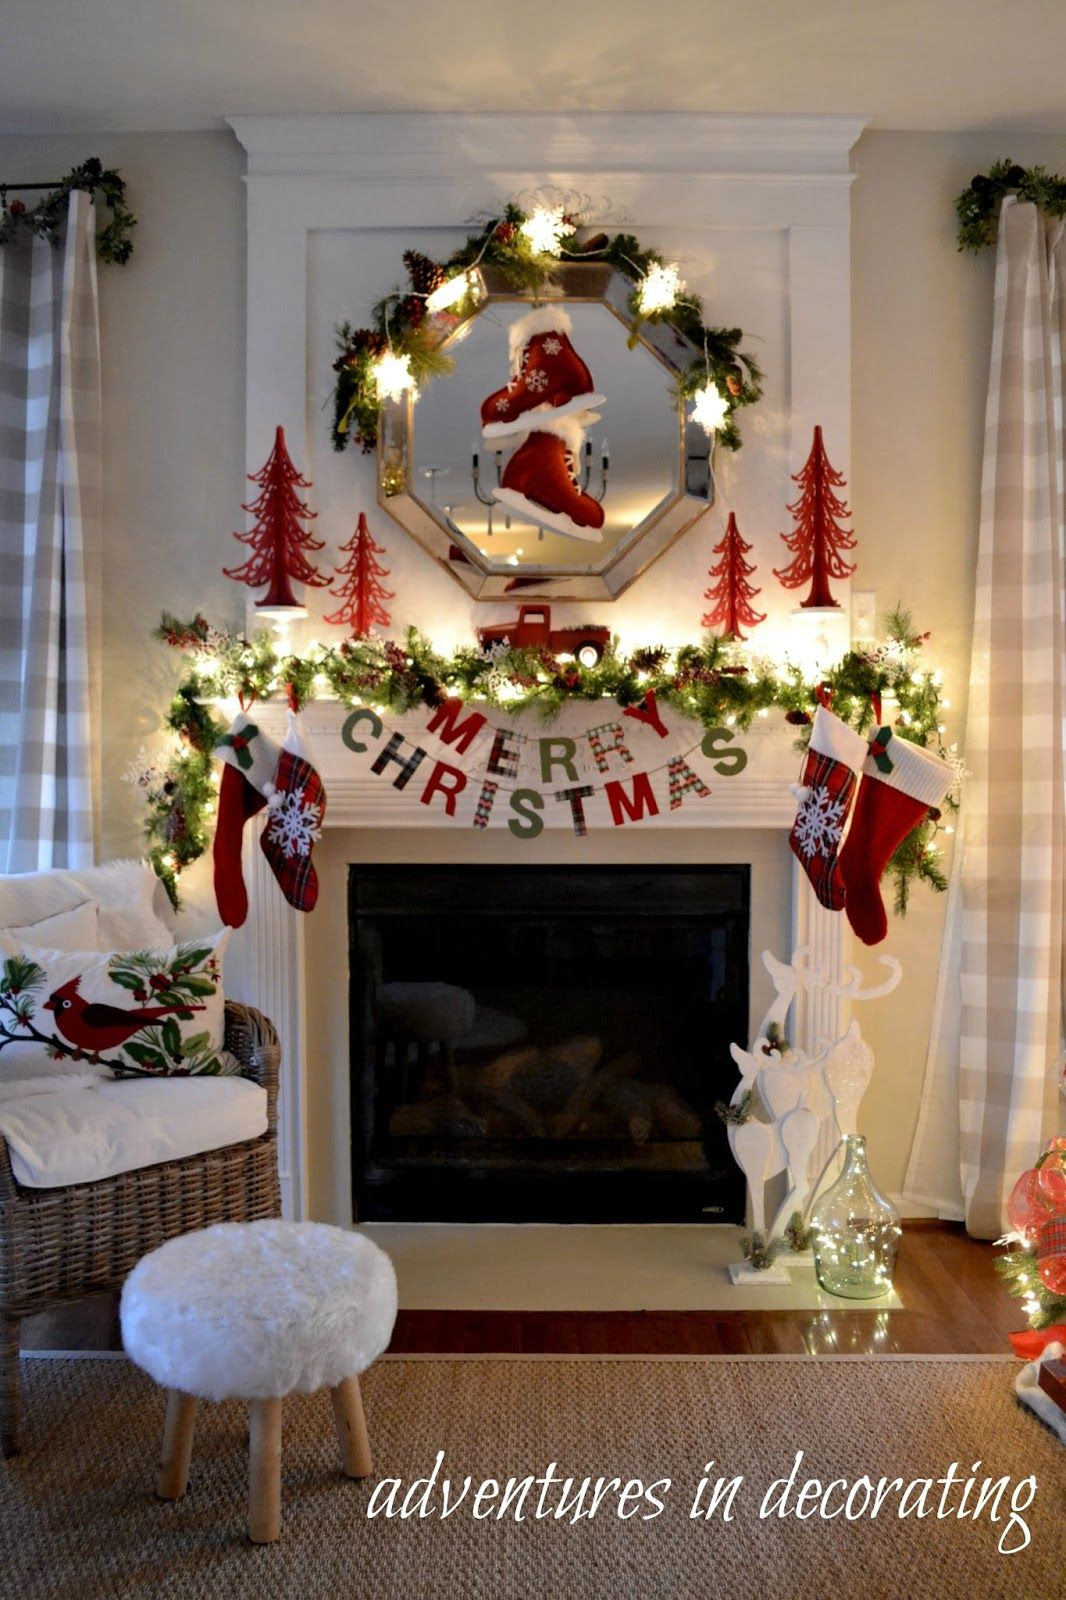 adventures in decorating our christmas great room mantel for a merry little christmas blog hop - Christmas Mantel Decorating Ideas Pinterest